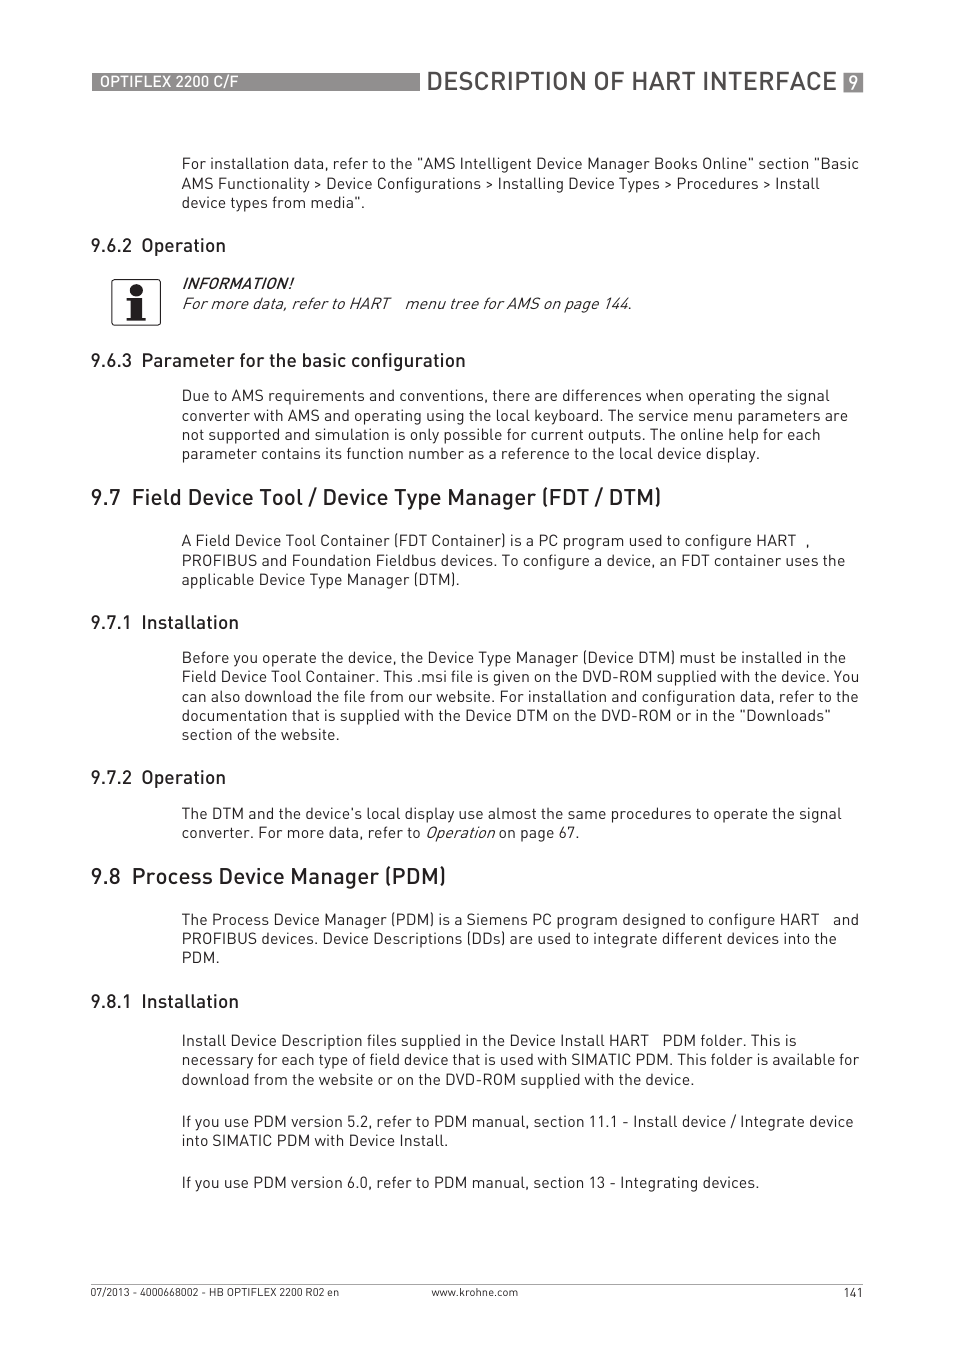 Description of hart interface, 8 process device manager (pdm